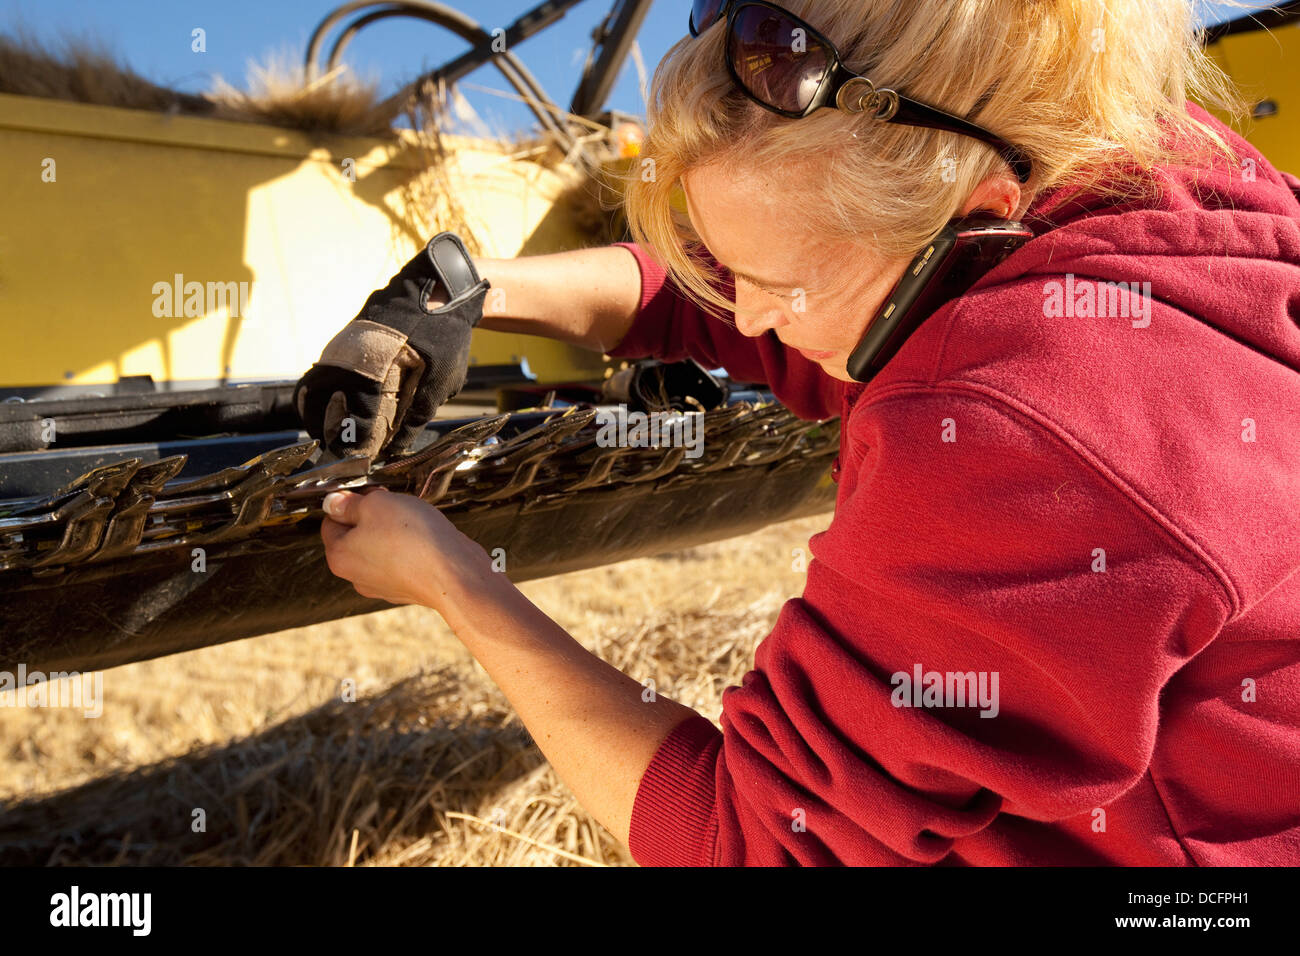 A Woman Works On Her Farm Equipment While Talking On Her Cell Phone; Three Hills, Alberta, Canada - Stock Image